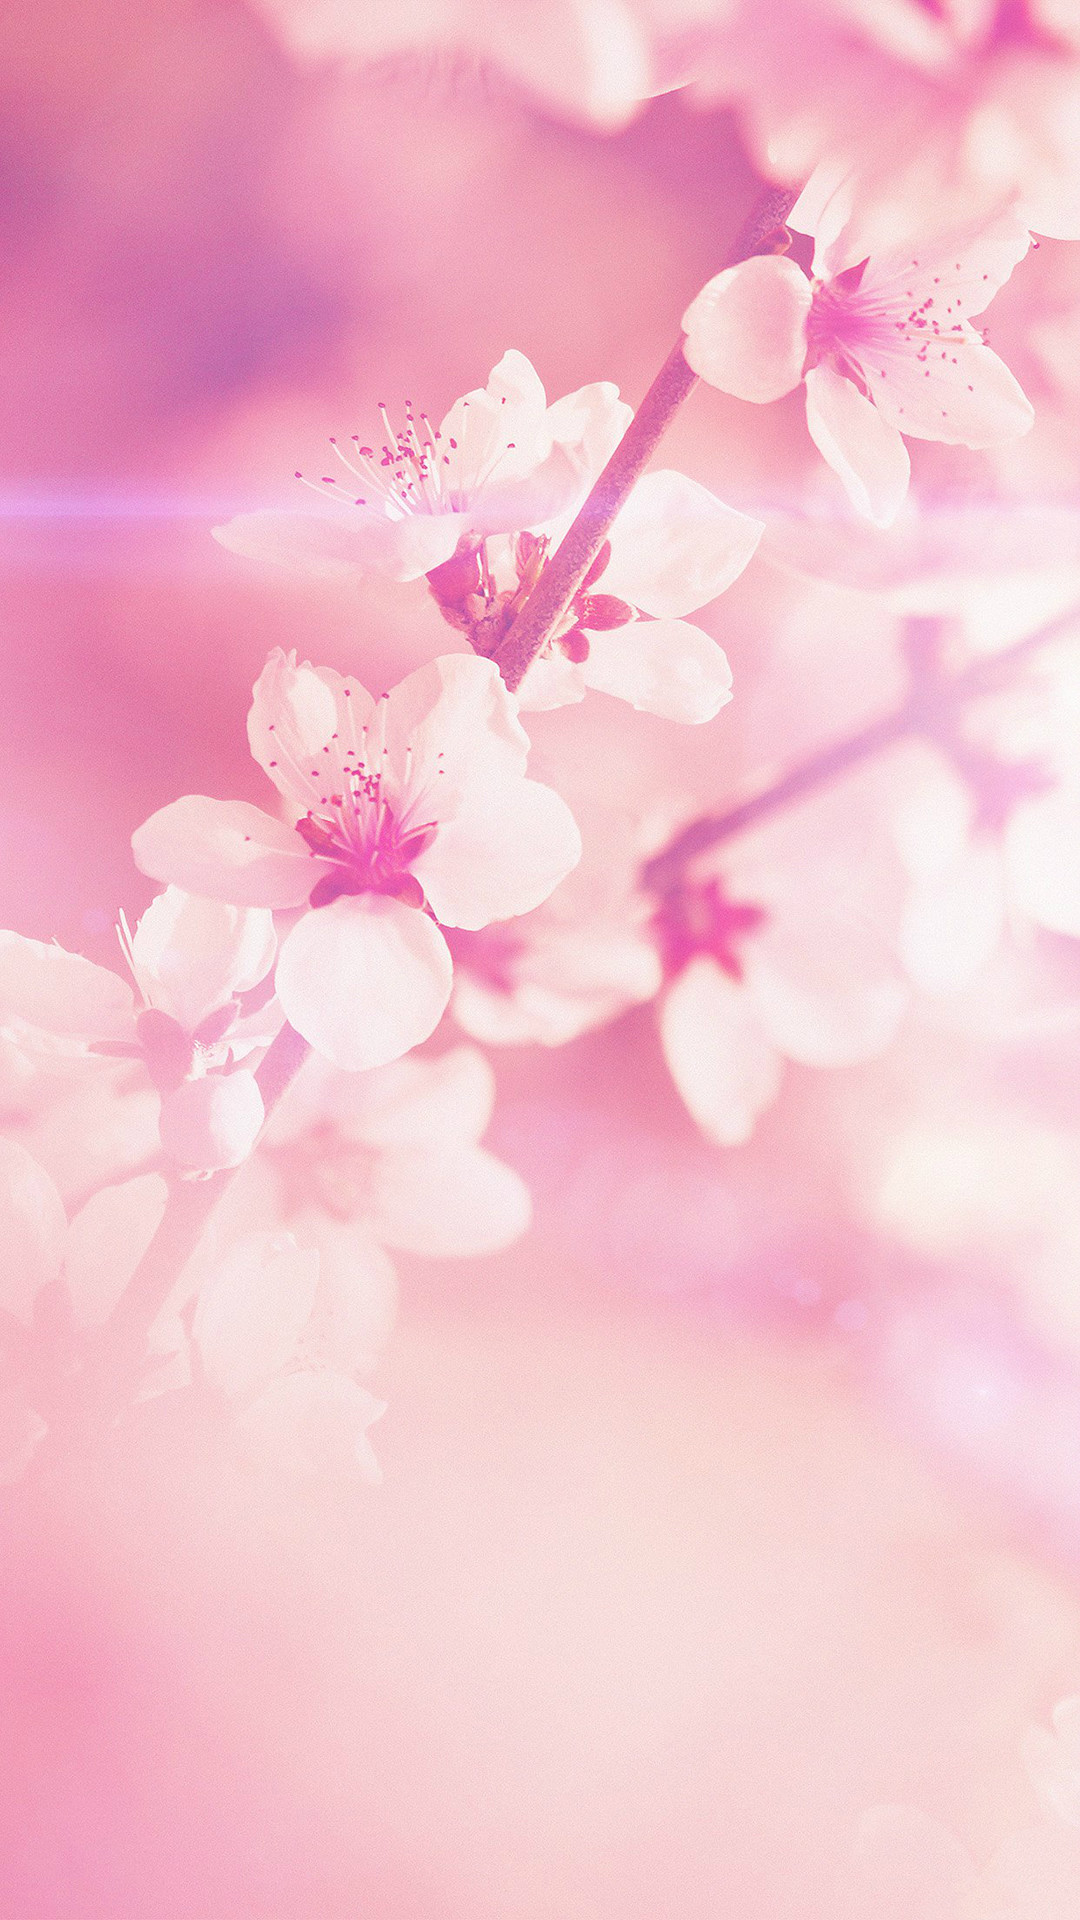 Flower pink background close up bud cherry flower pink mightylinksfo